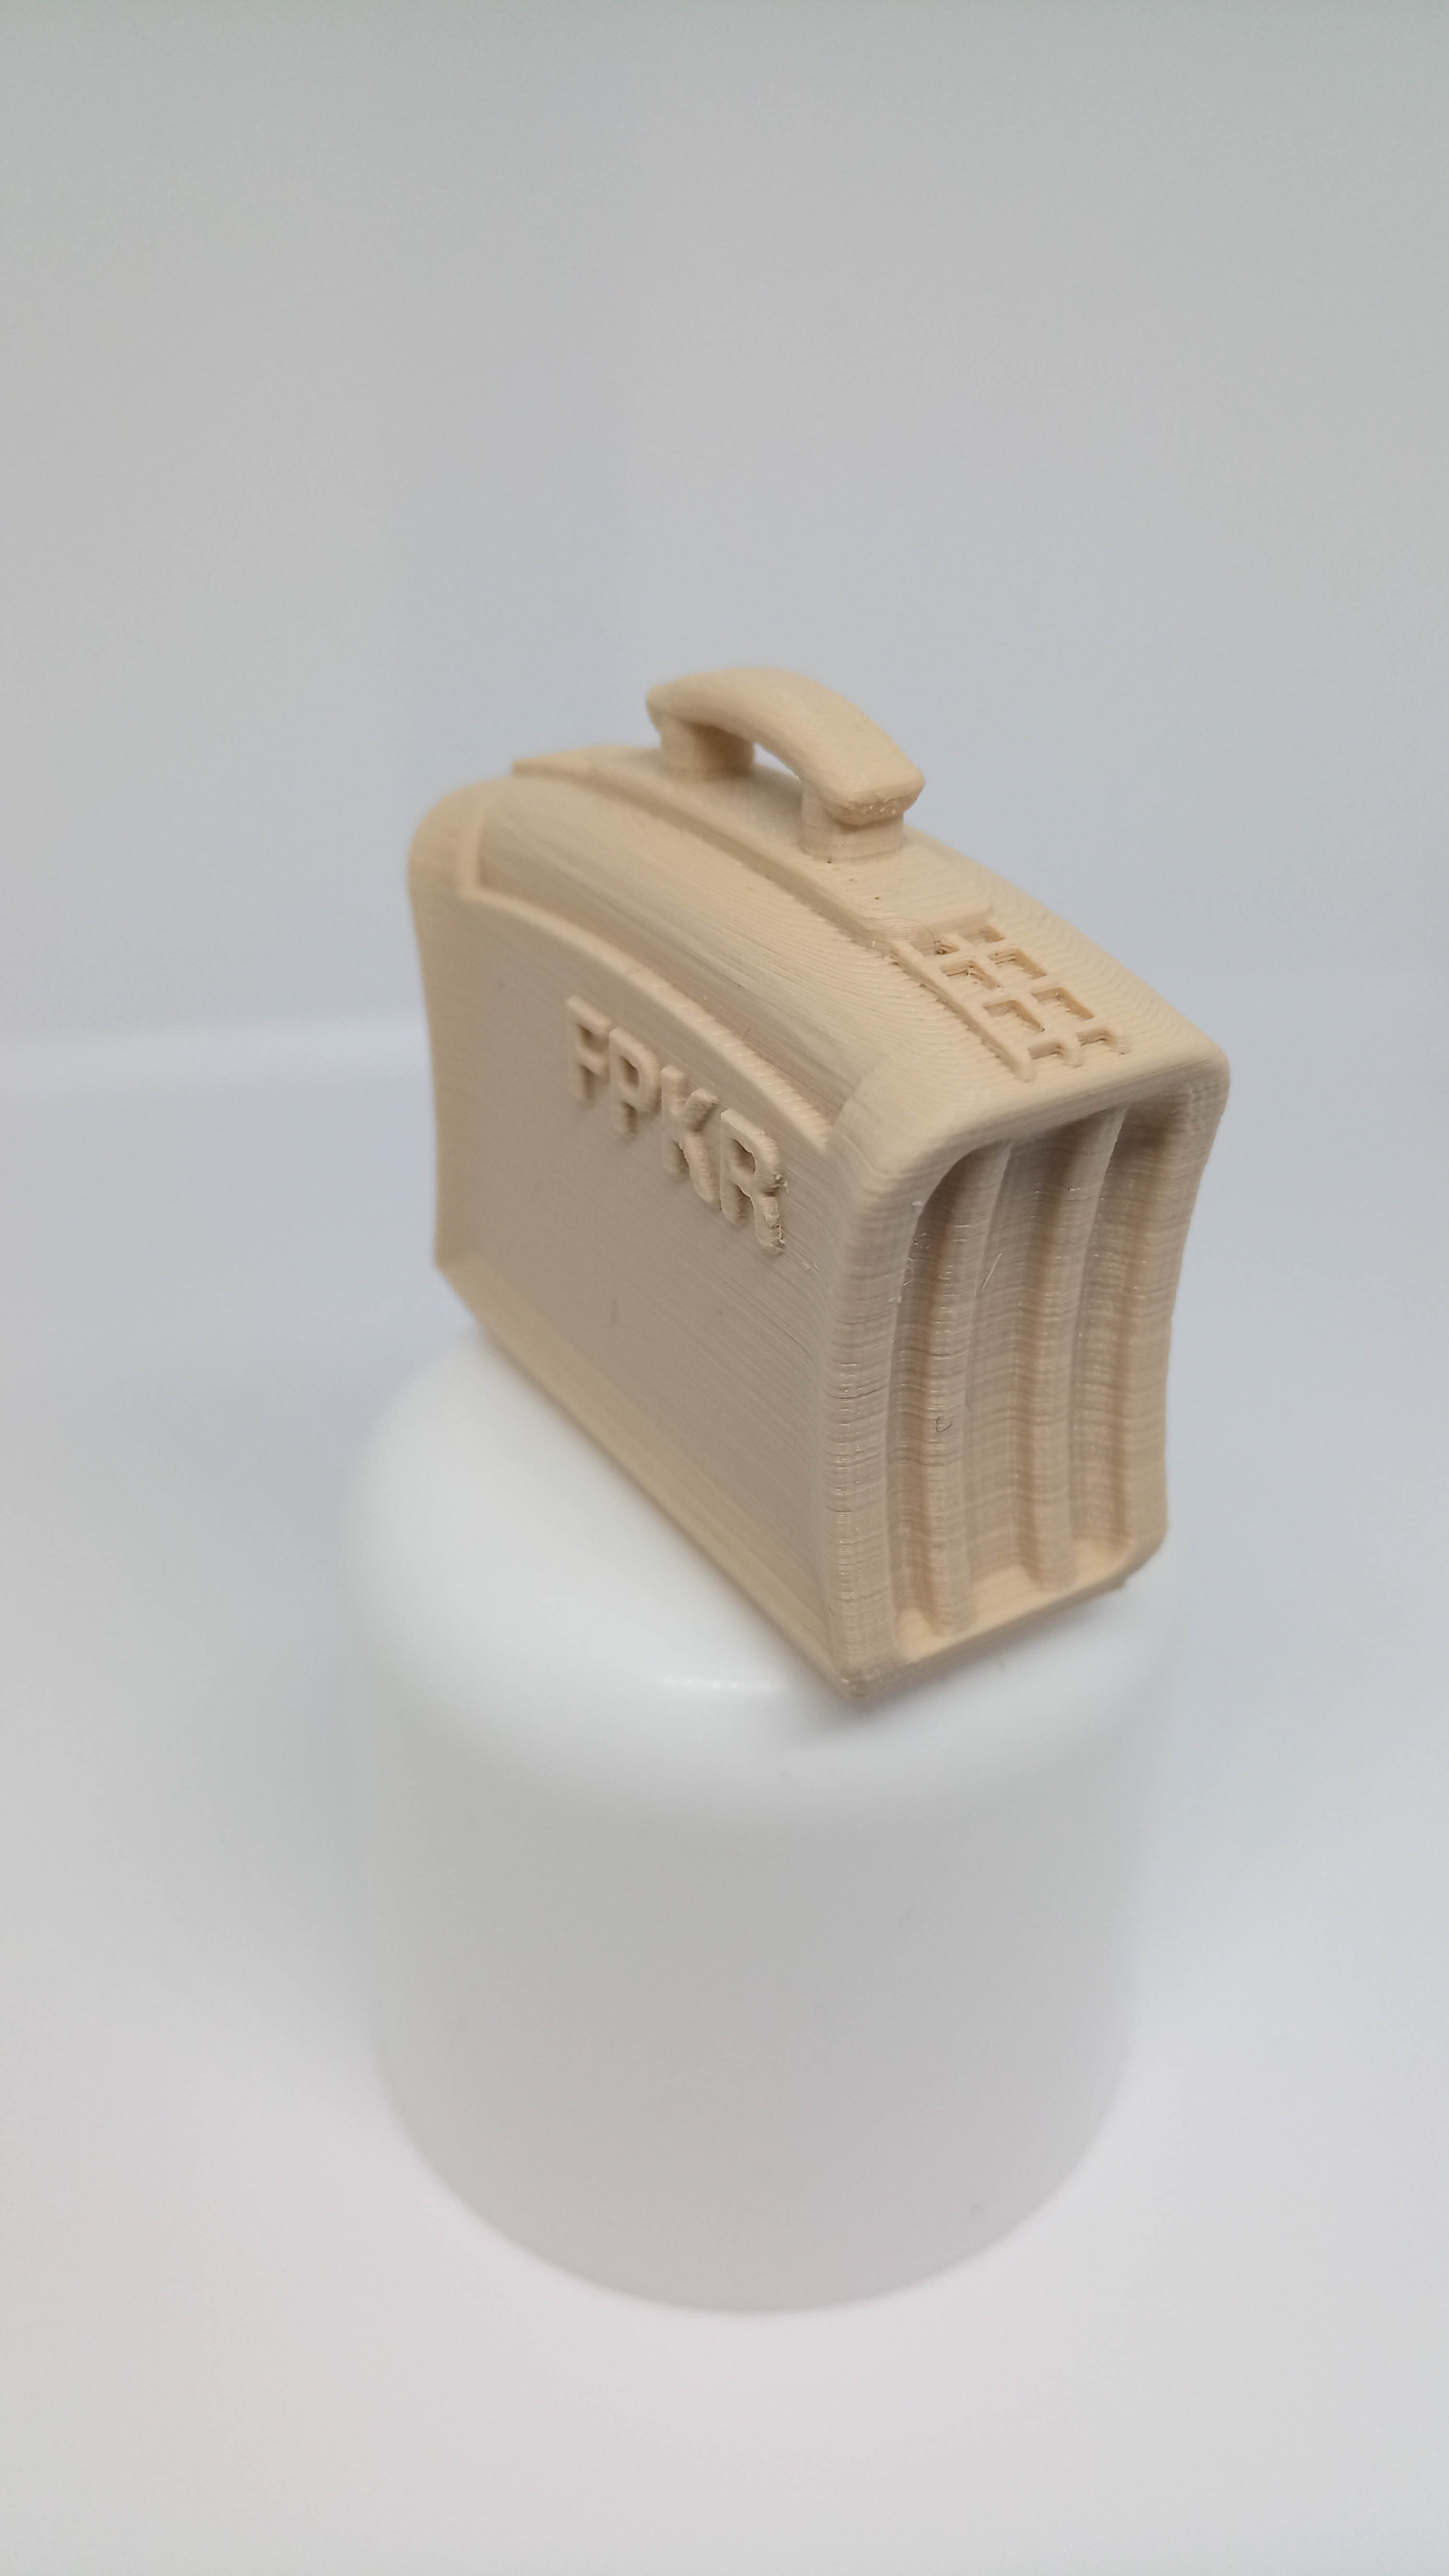 IMG_20200405_142542.jpg Download free STL file SACOCHE MASTER • Template to 3D print, PLP